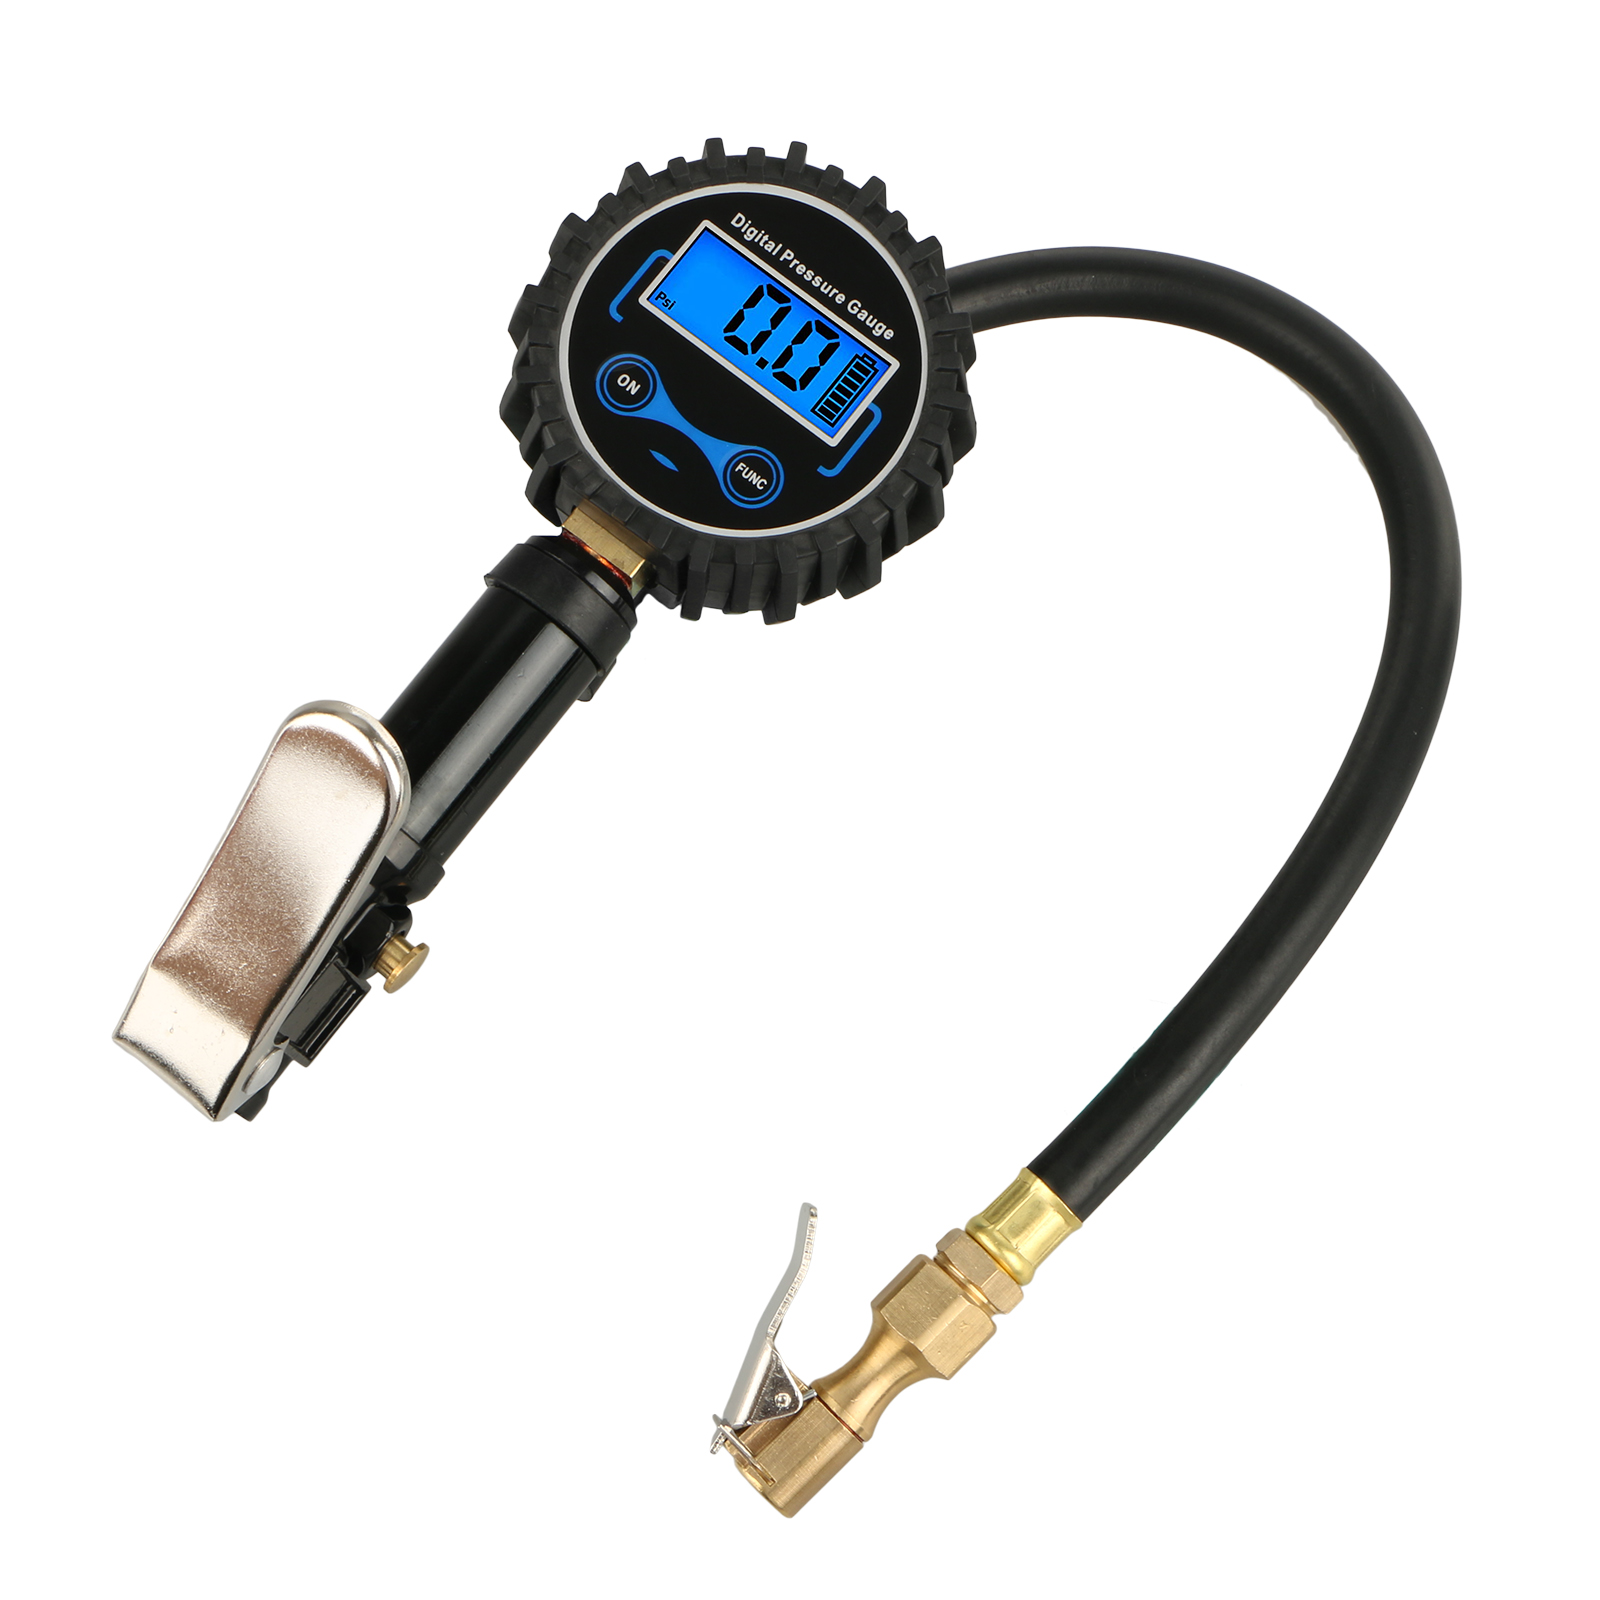 Digital Tire Inflator with Pressure Gauge for All Types of Auto, SUV, Trucks, Motorcycles and Bikes